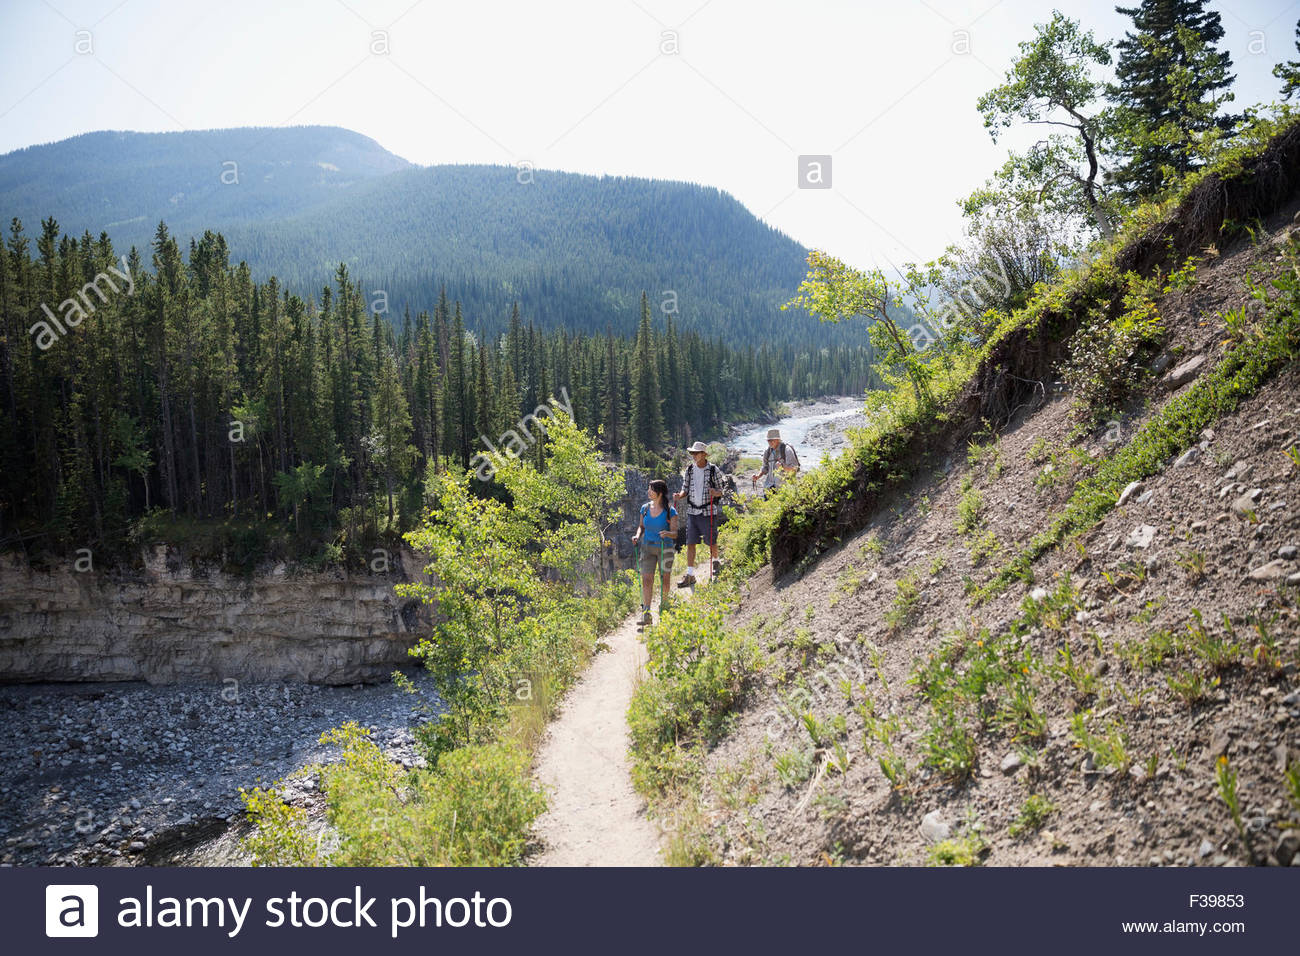 Hikers walking along craggy ridge trail above river - Stock Image